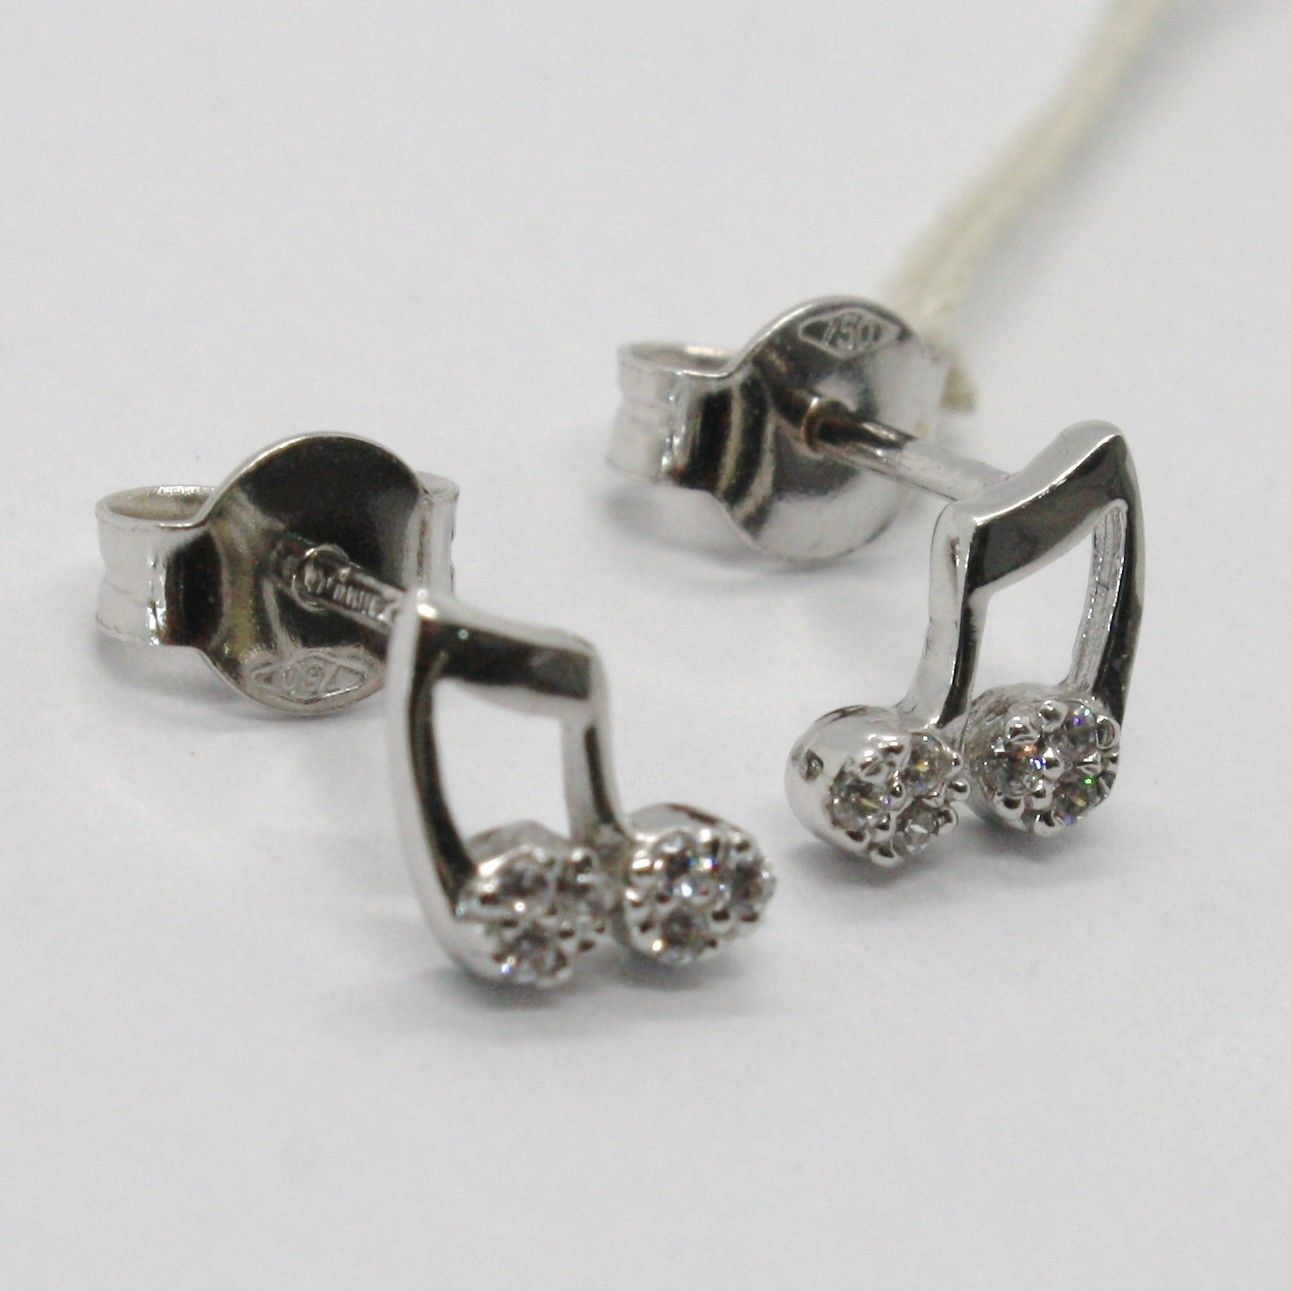 18K WHITE GOLD EARRINGS, MINI MUSICAL NOTE, ZIRCONIA, LENGTH 8 MM, MADE IN ITALY